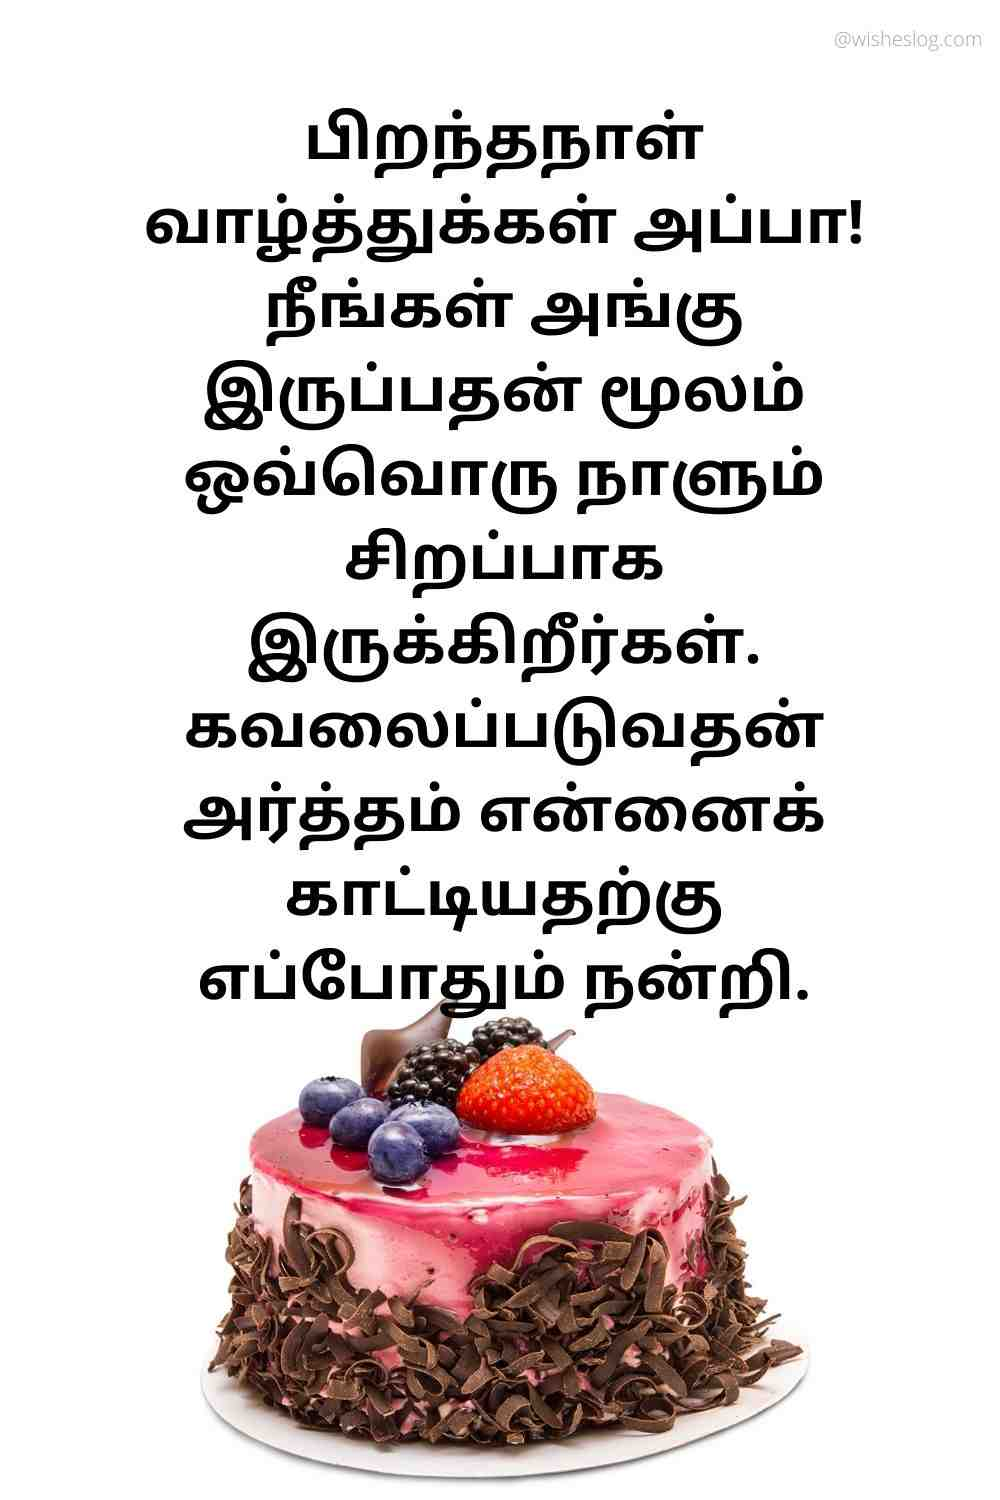 happy birthday images in tamil for dad